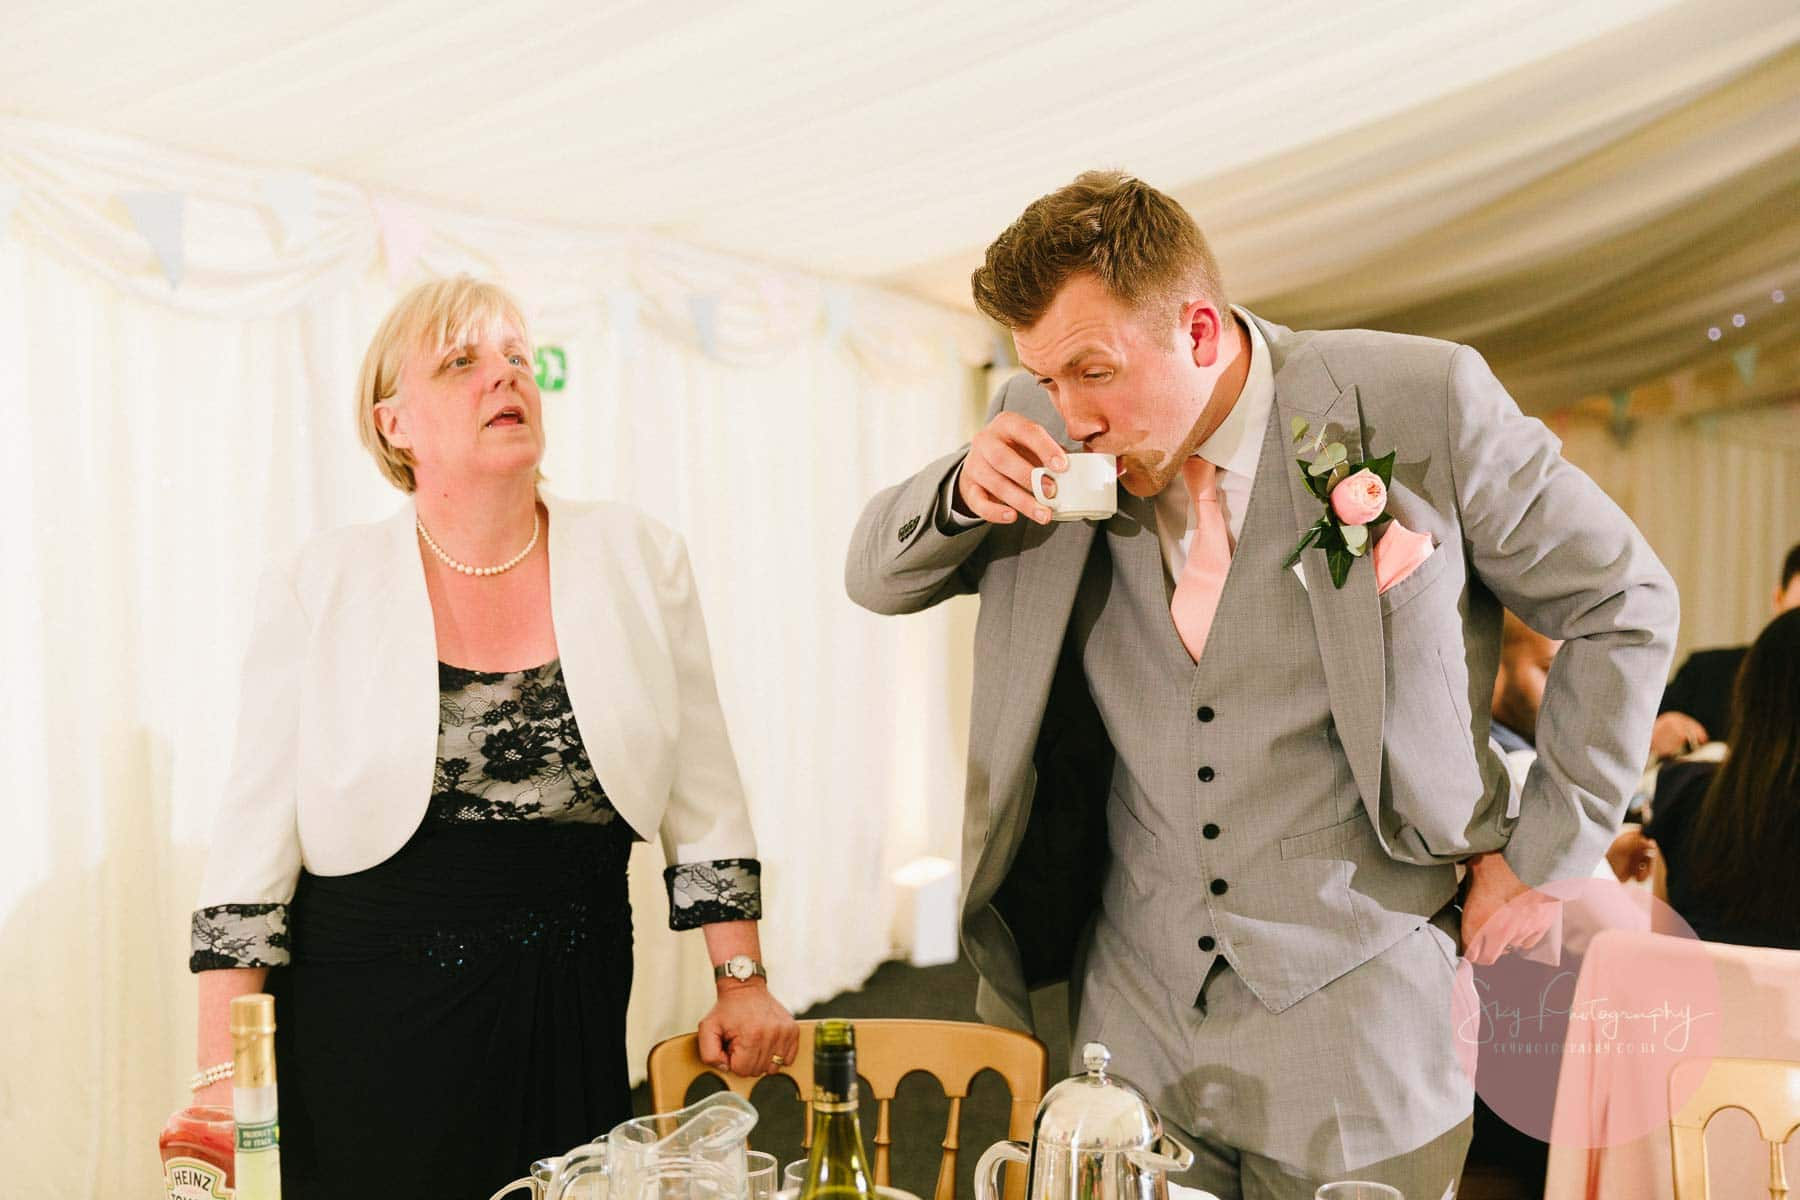 Best man pulling funny face